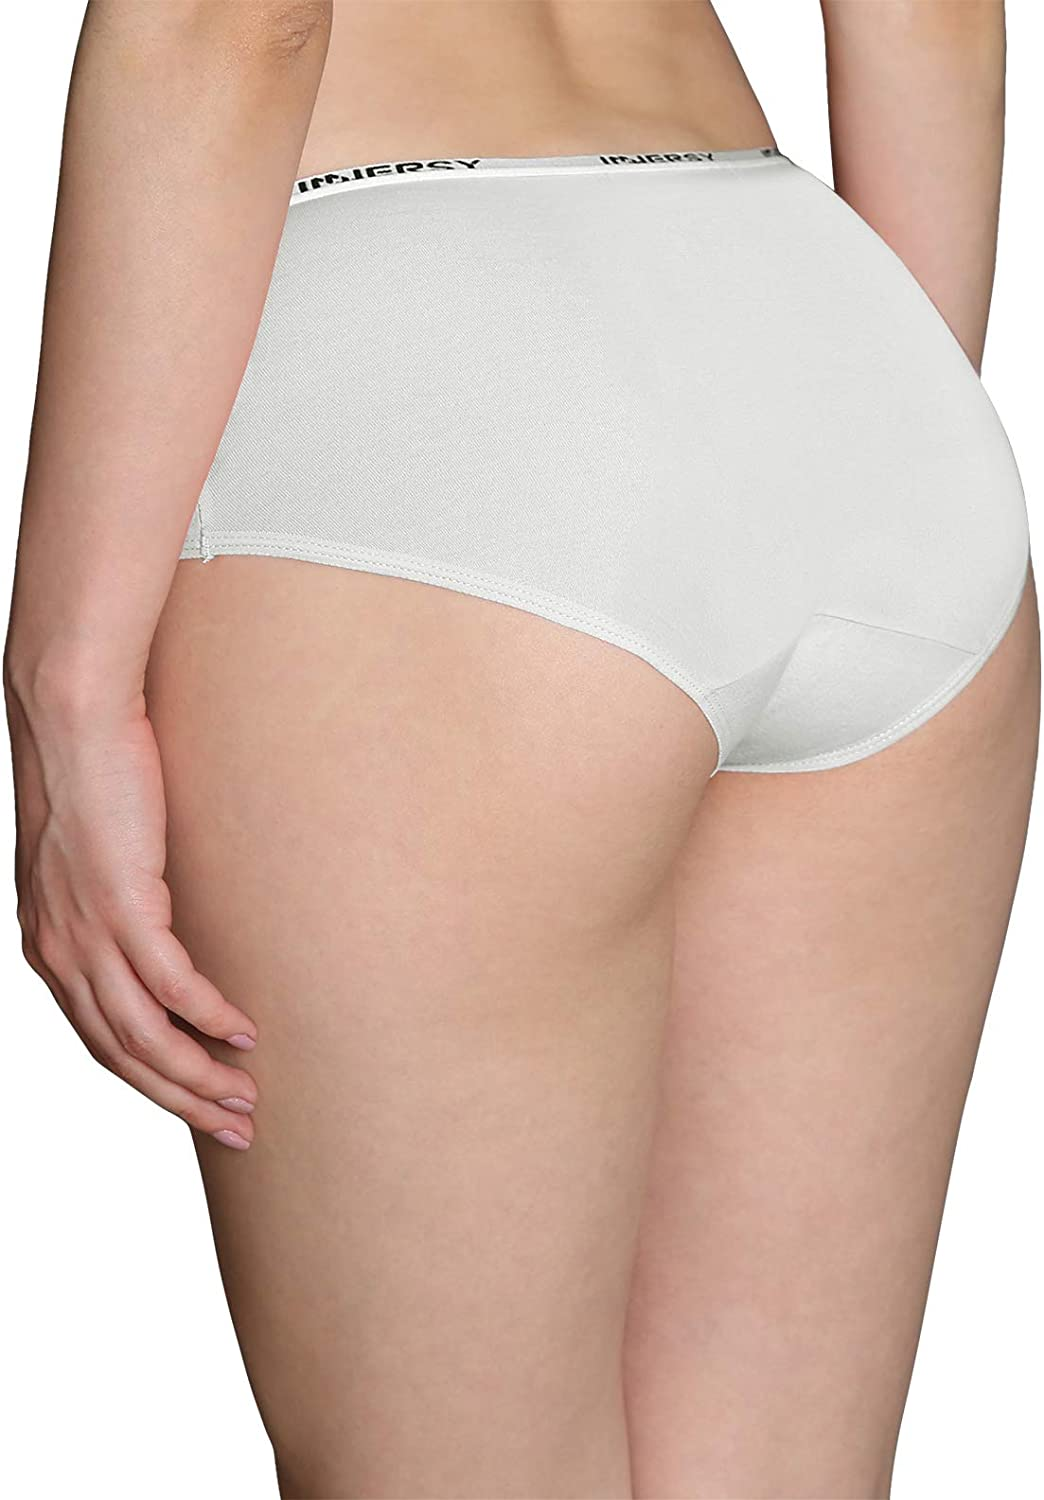 INNERSY Underwear for Women Stretch Cotton Knickers Multipack Full Briefs Soft Panties Pack of 6